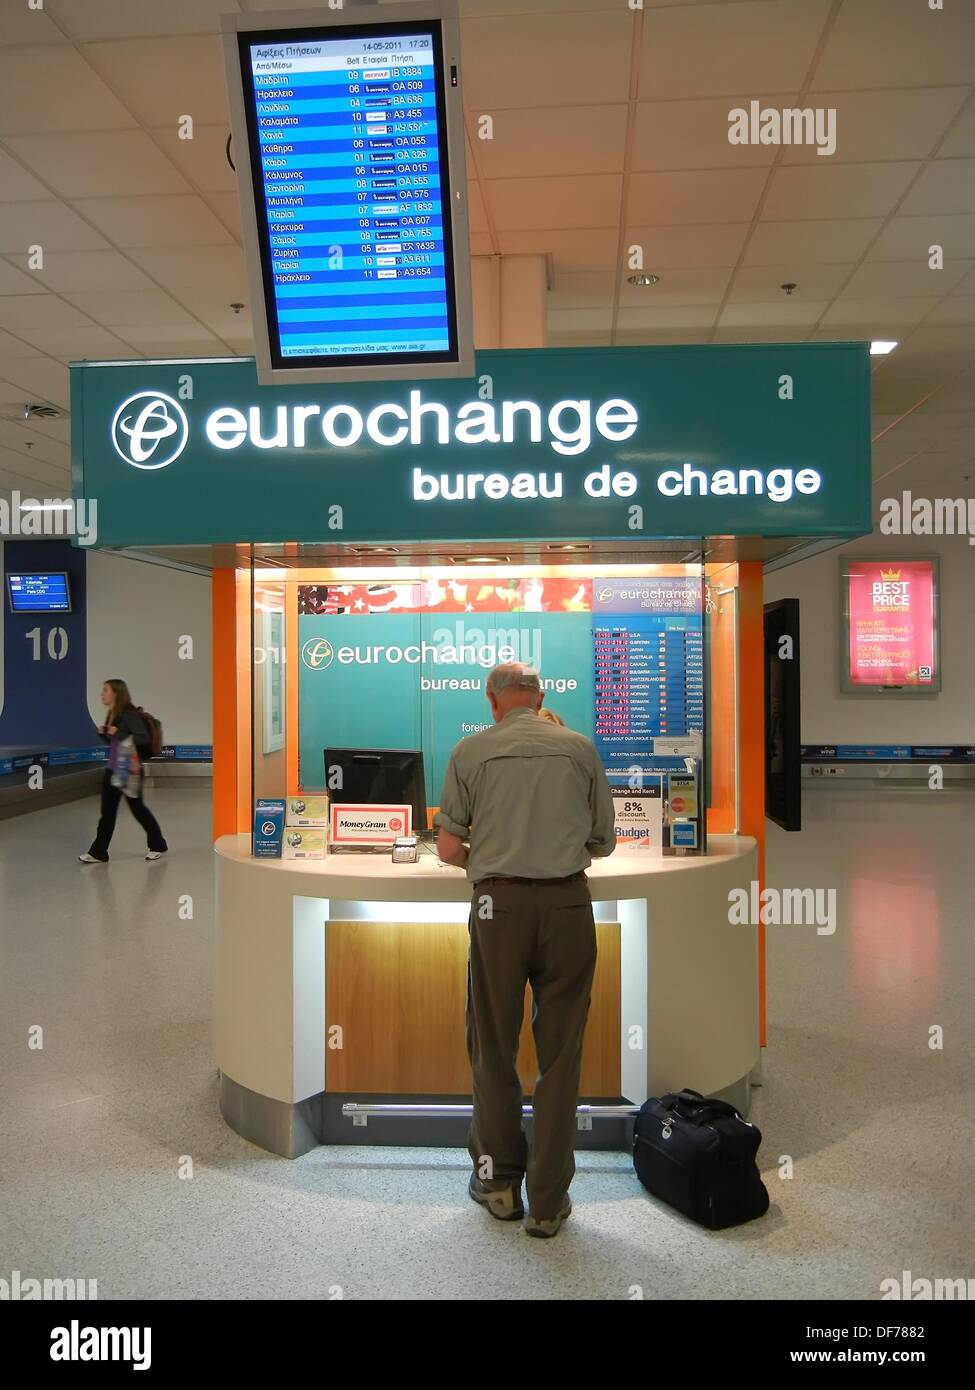 currency exchange booth in international airport stock photo 61011106 alamy. Black Bedroom Furniture Sets. Home Design Ideas